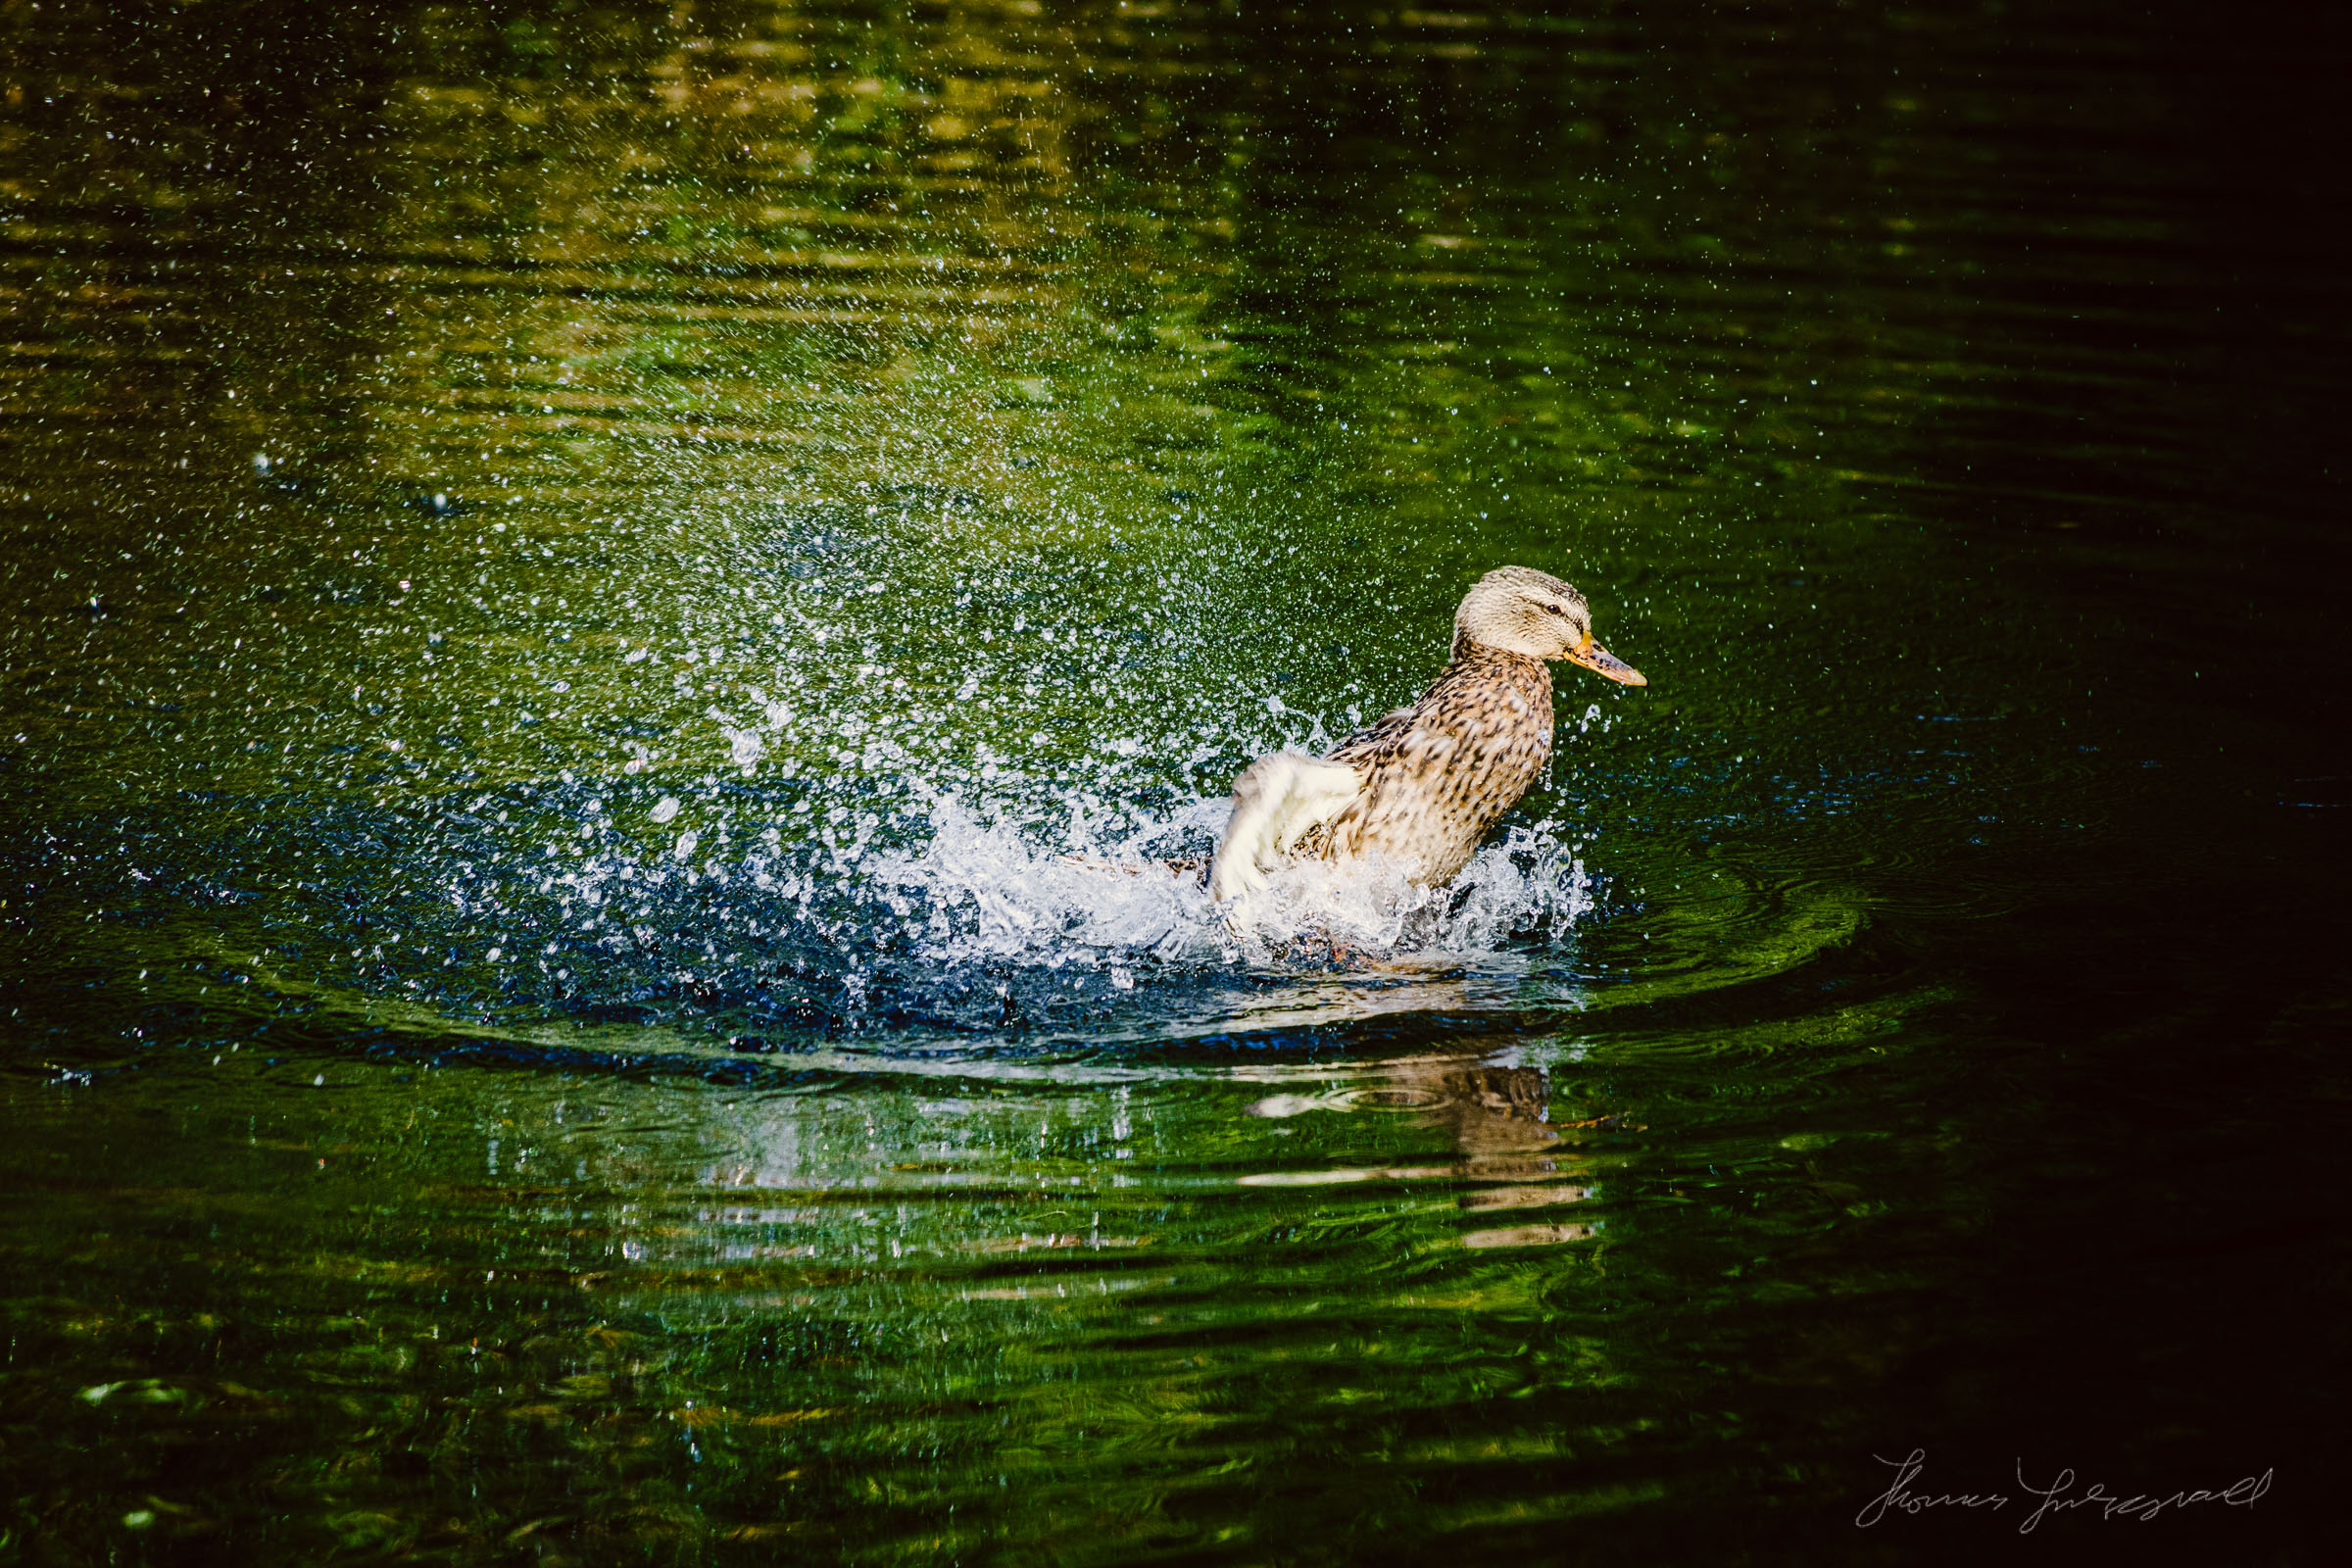 Duck in action on the water, Marley Park, Dublin